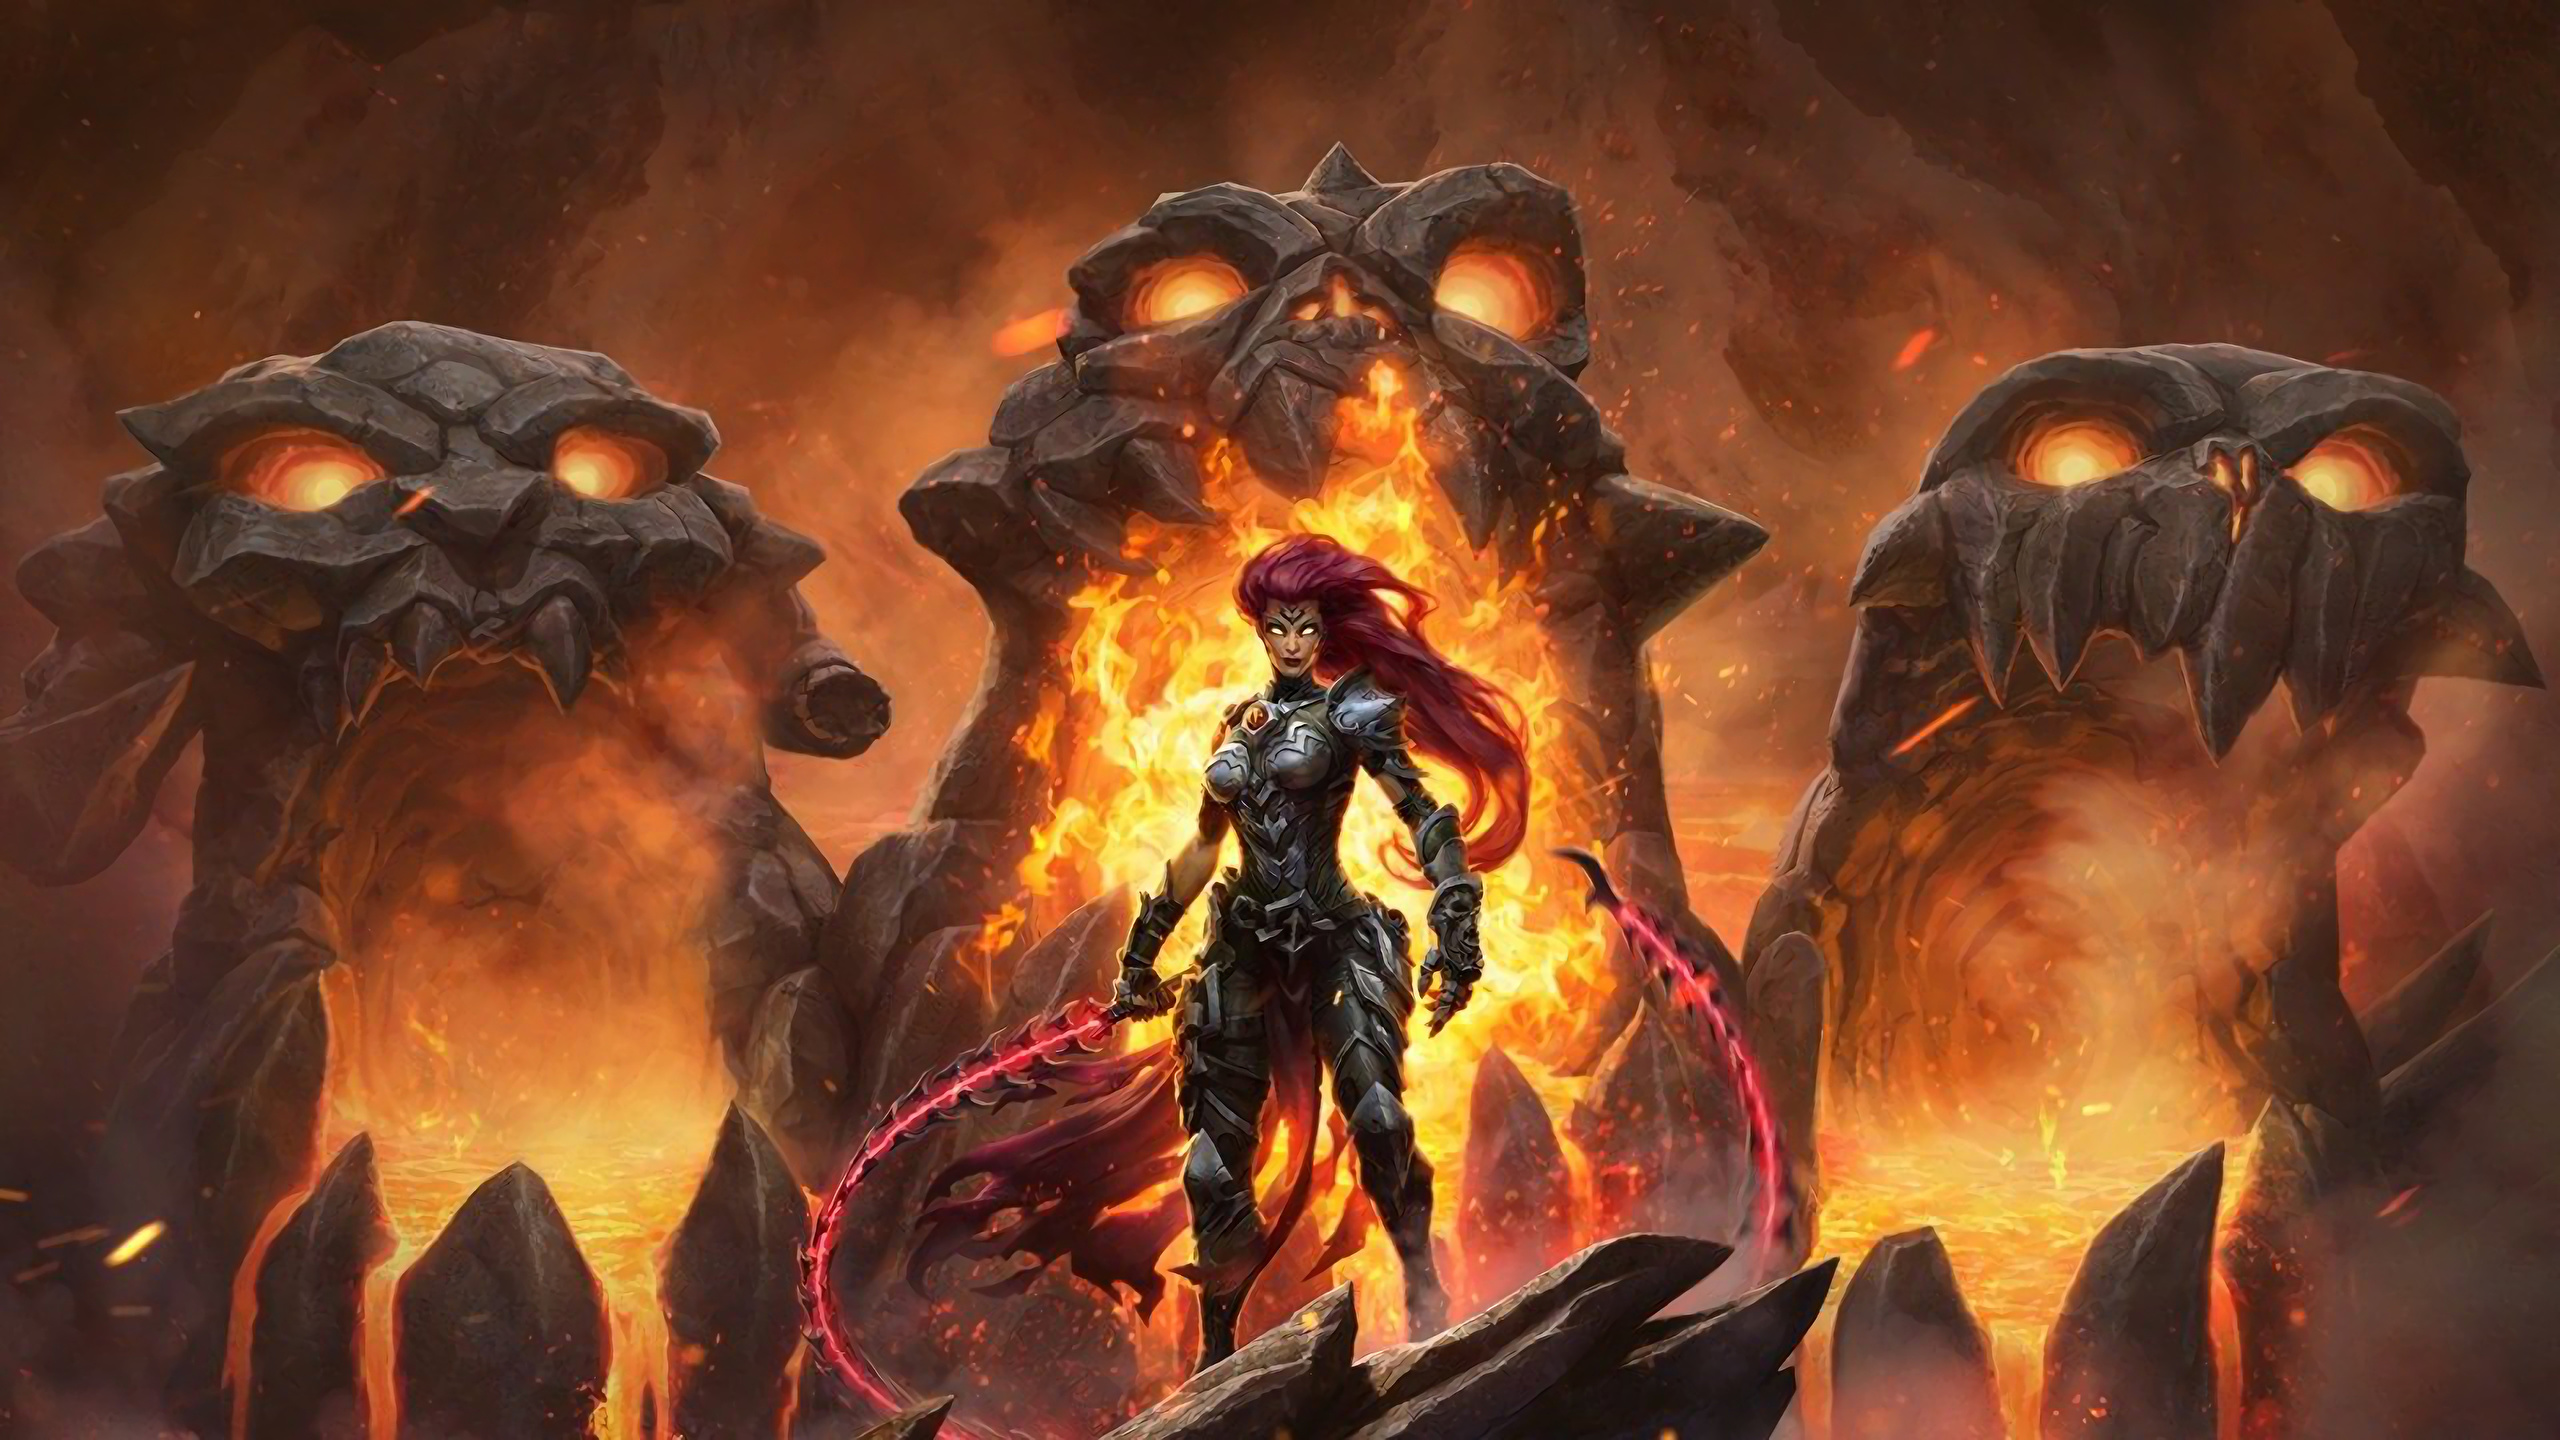 Picture Darksiders Armor Monsters Warrior 3 Fantasy Young